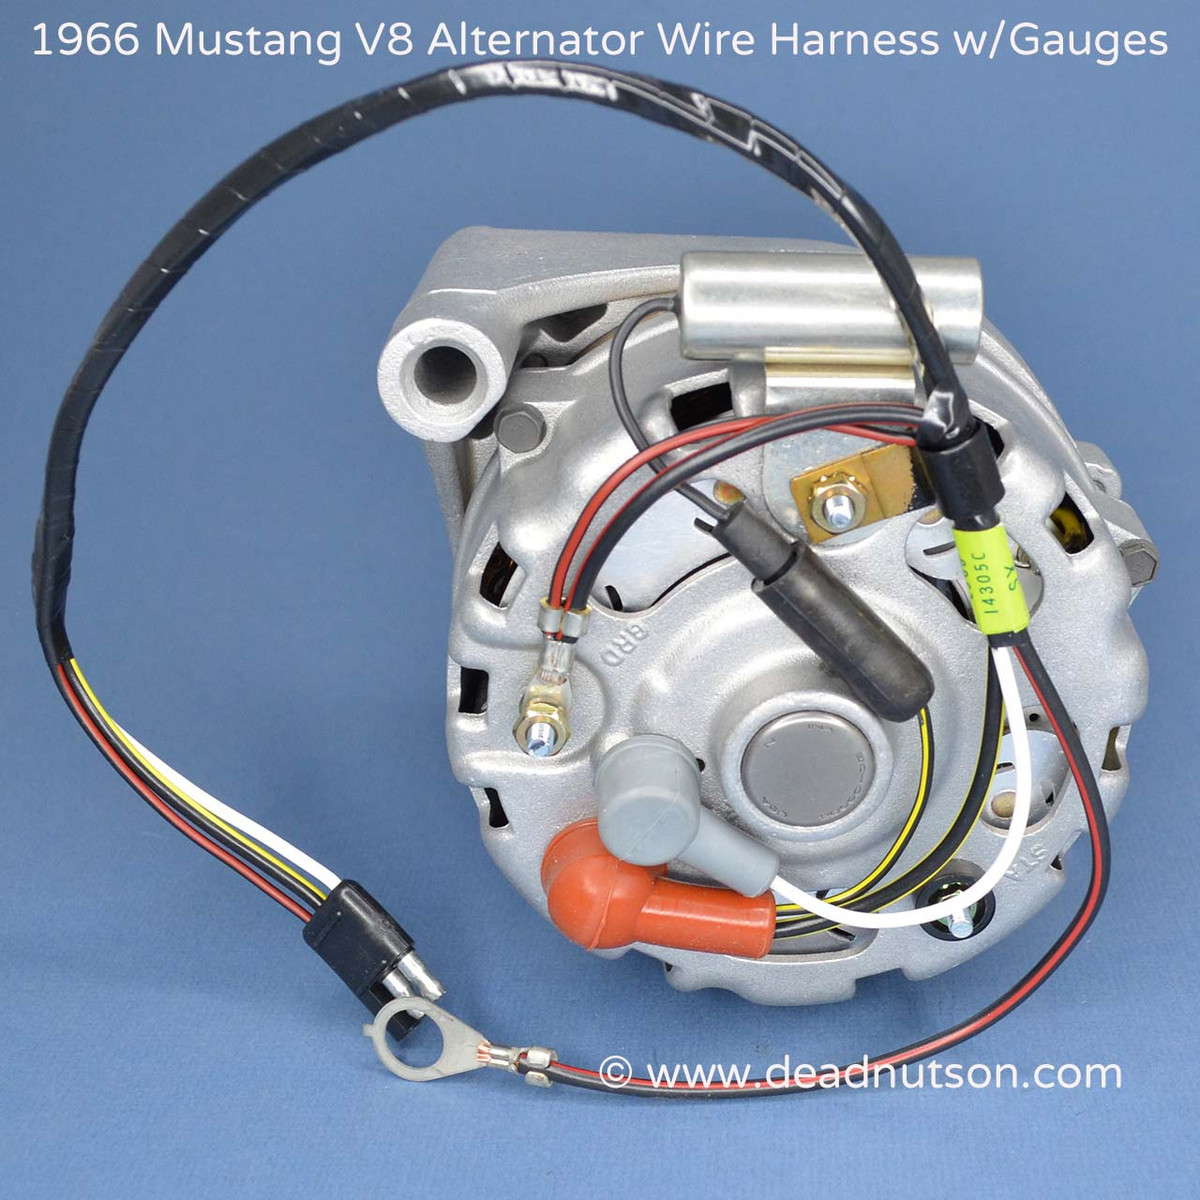 1964-1965 mustang alternator wire harness tag 289 w/instrument gauges